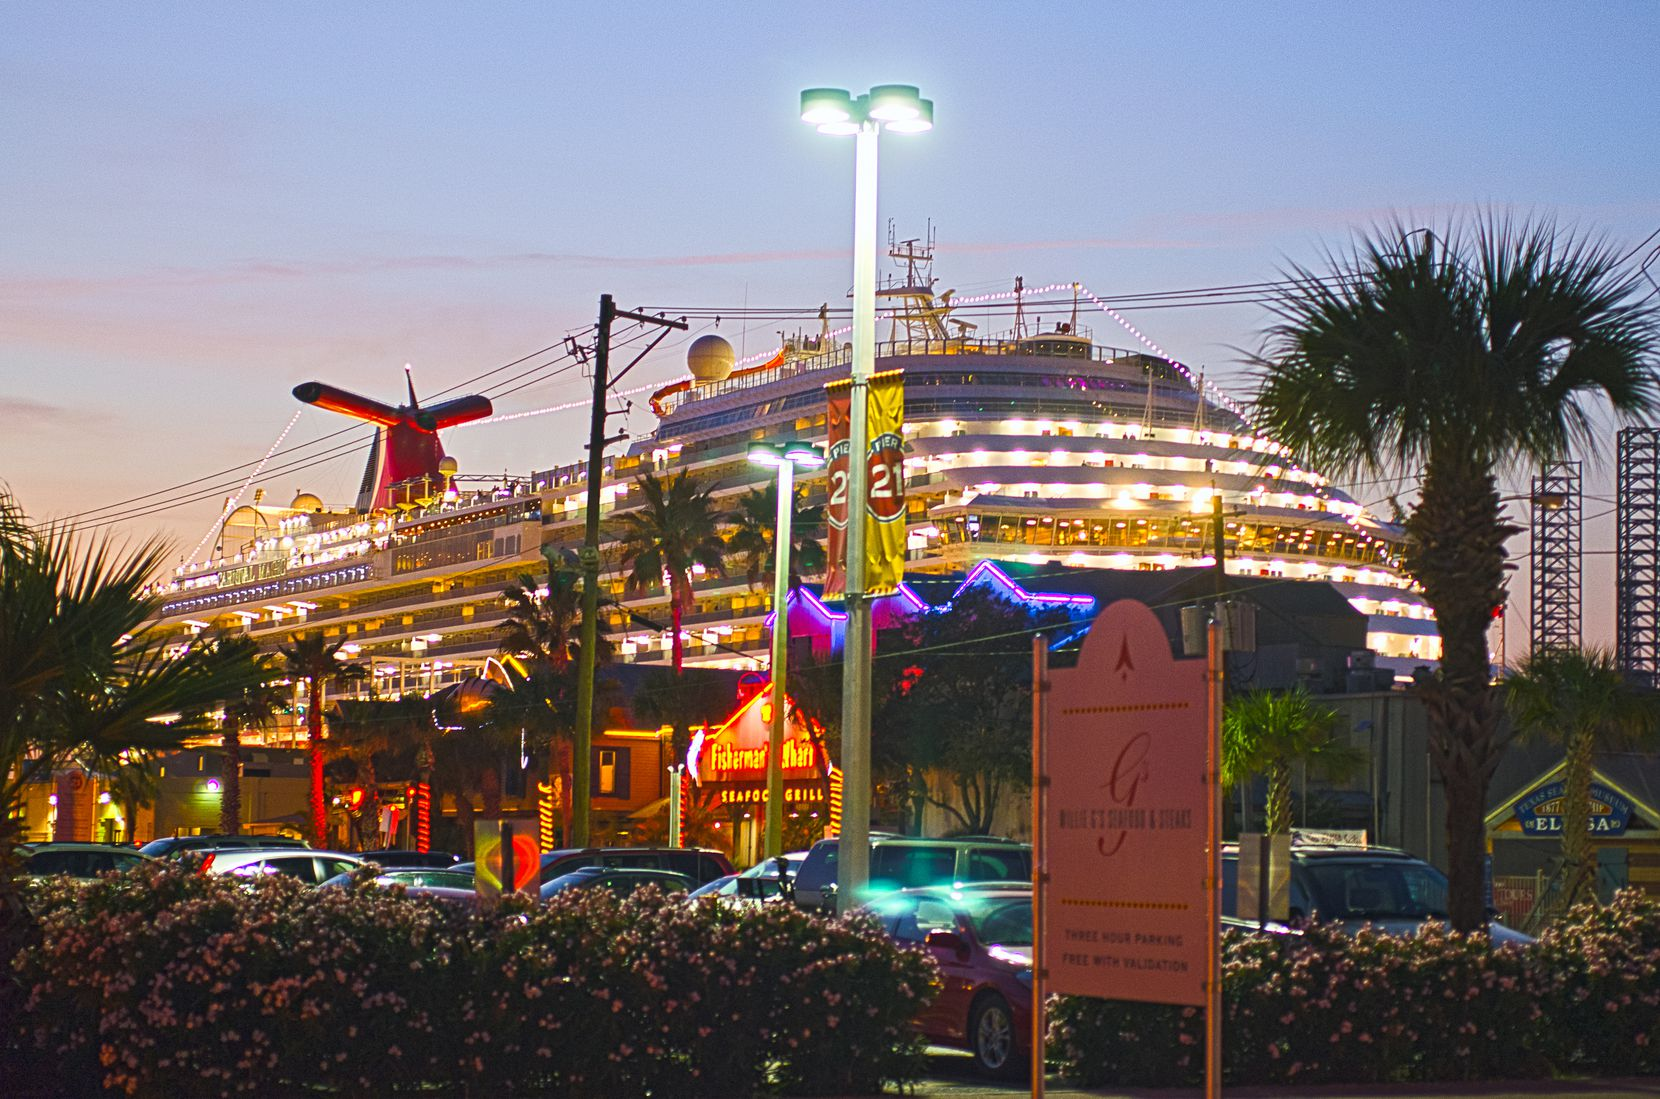 Cruise ships are a common sight in Galveston